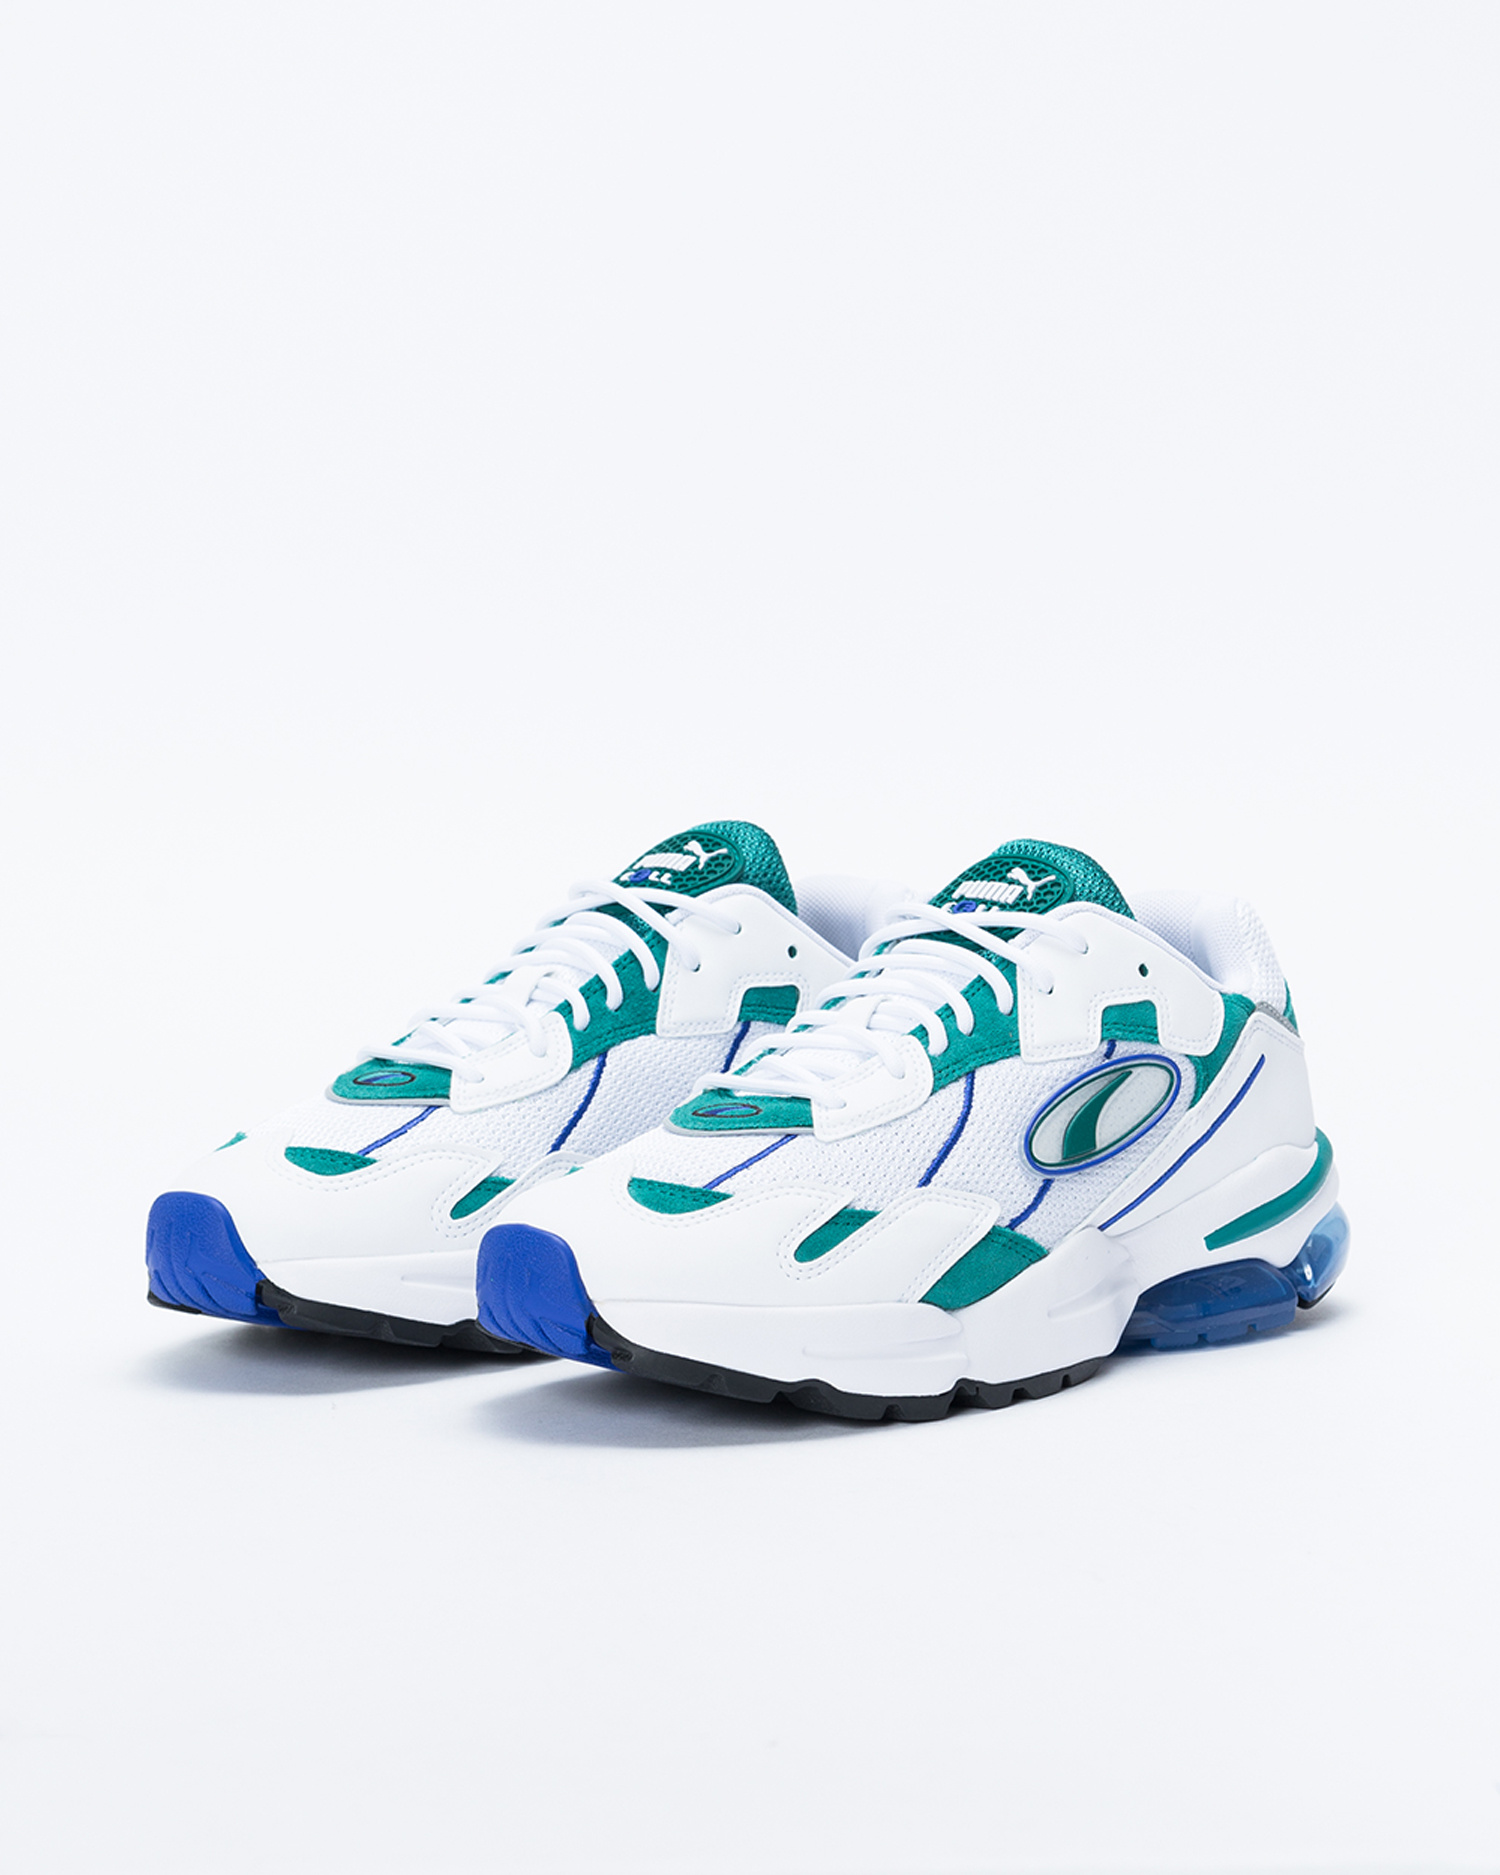 Puma Cell Ultra OG Pack Pume White-Teal Green